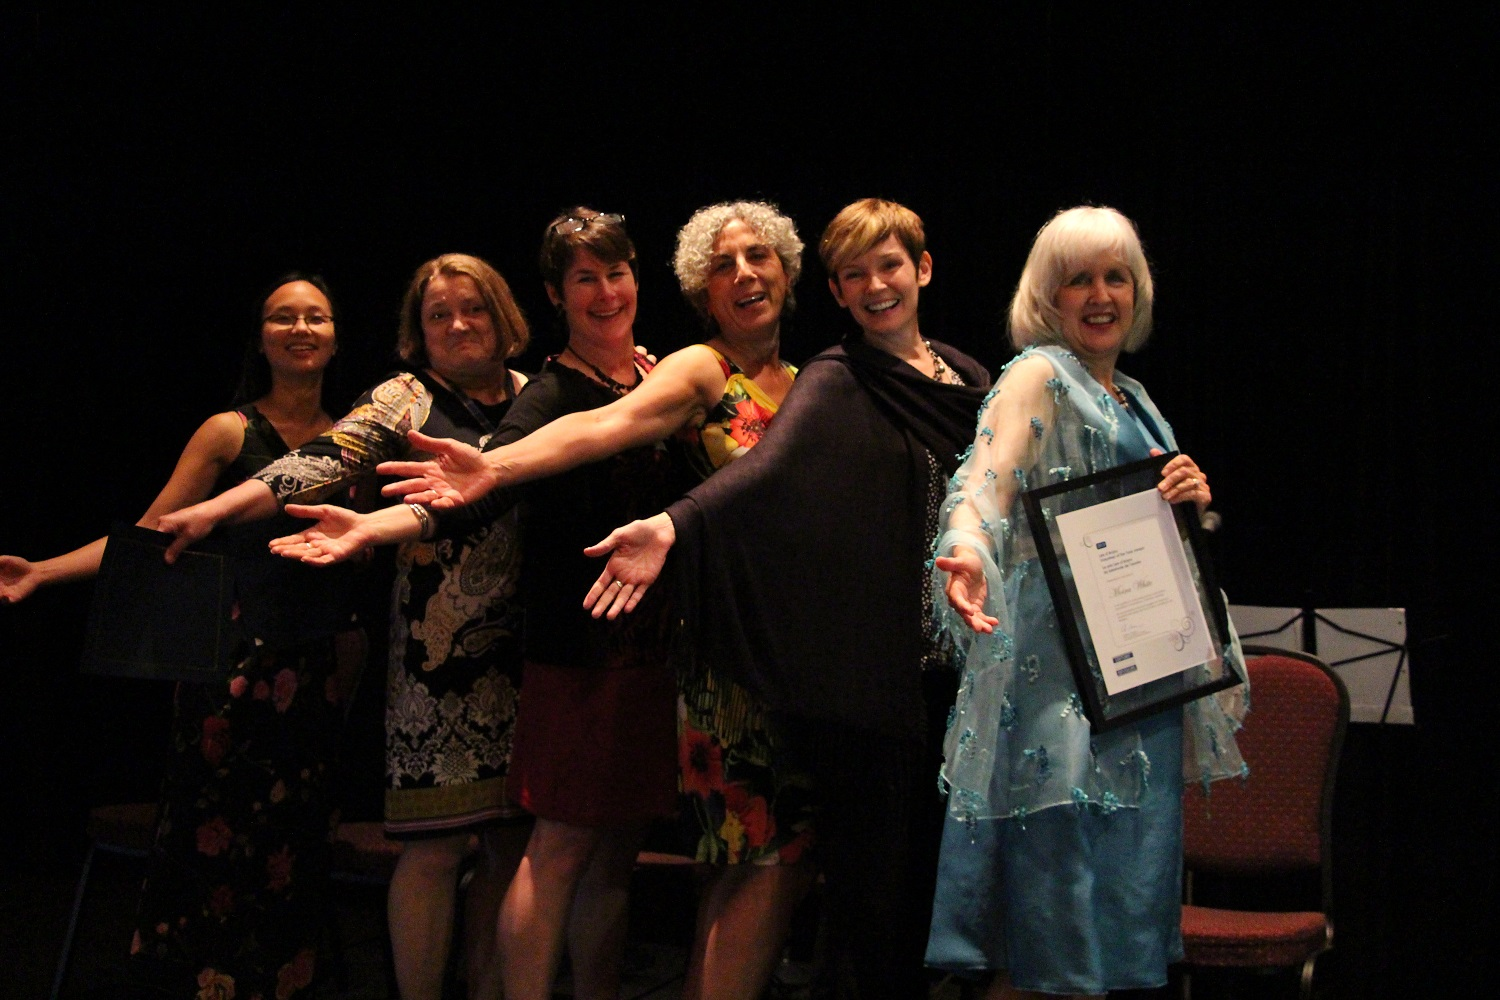 2013 EAC President's Award recipients (L-R) Iva Cheung, Anne Curry, Nancy Holland, Valerie Mansour, Brooke Smith and Lee d'Anjou Volunteer of the Year Moira White.